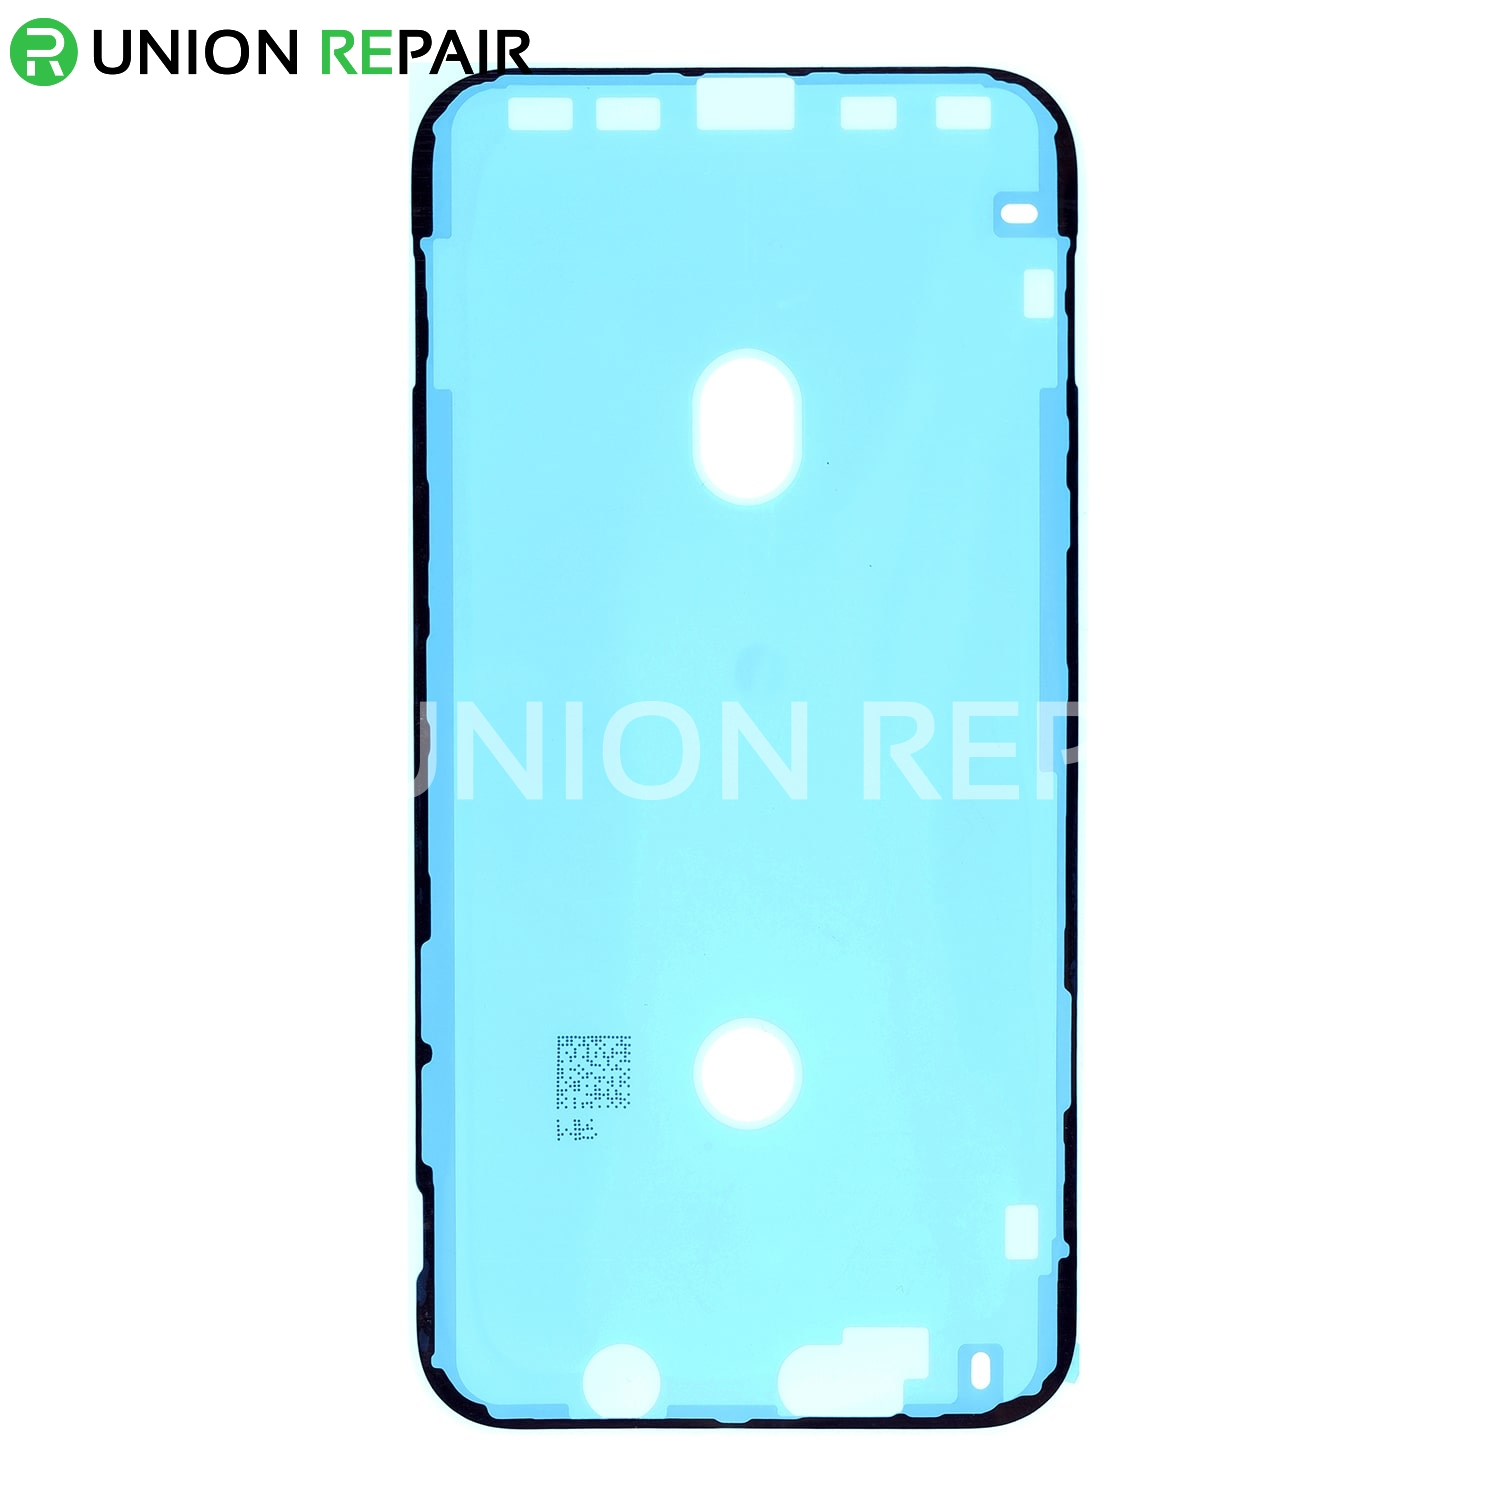 Replacement for iPhone XR Digitizer Frame Adhesive